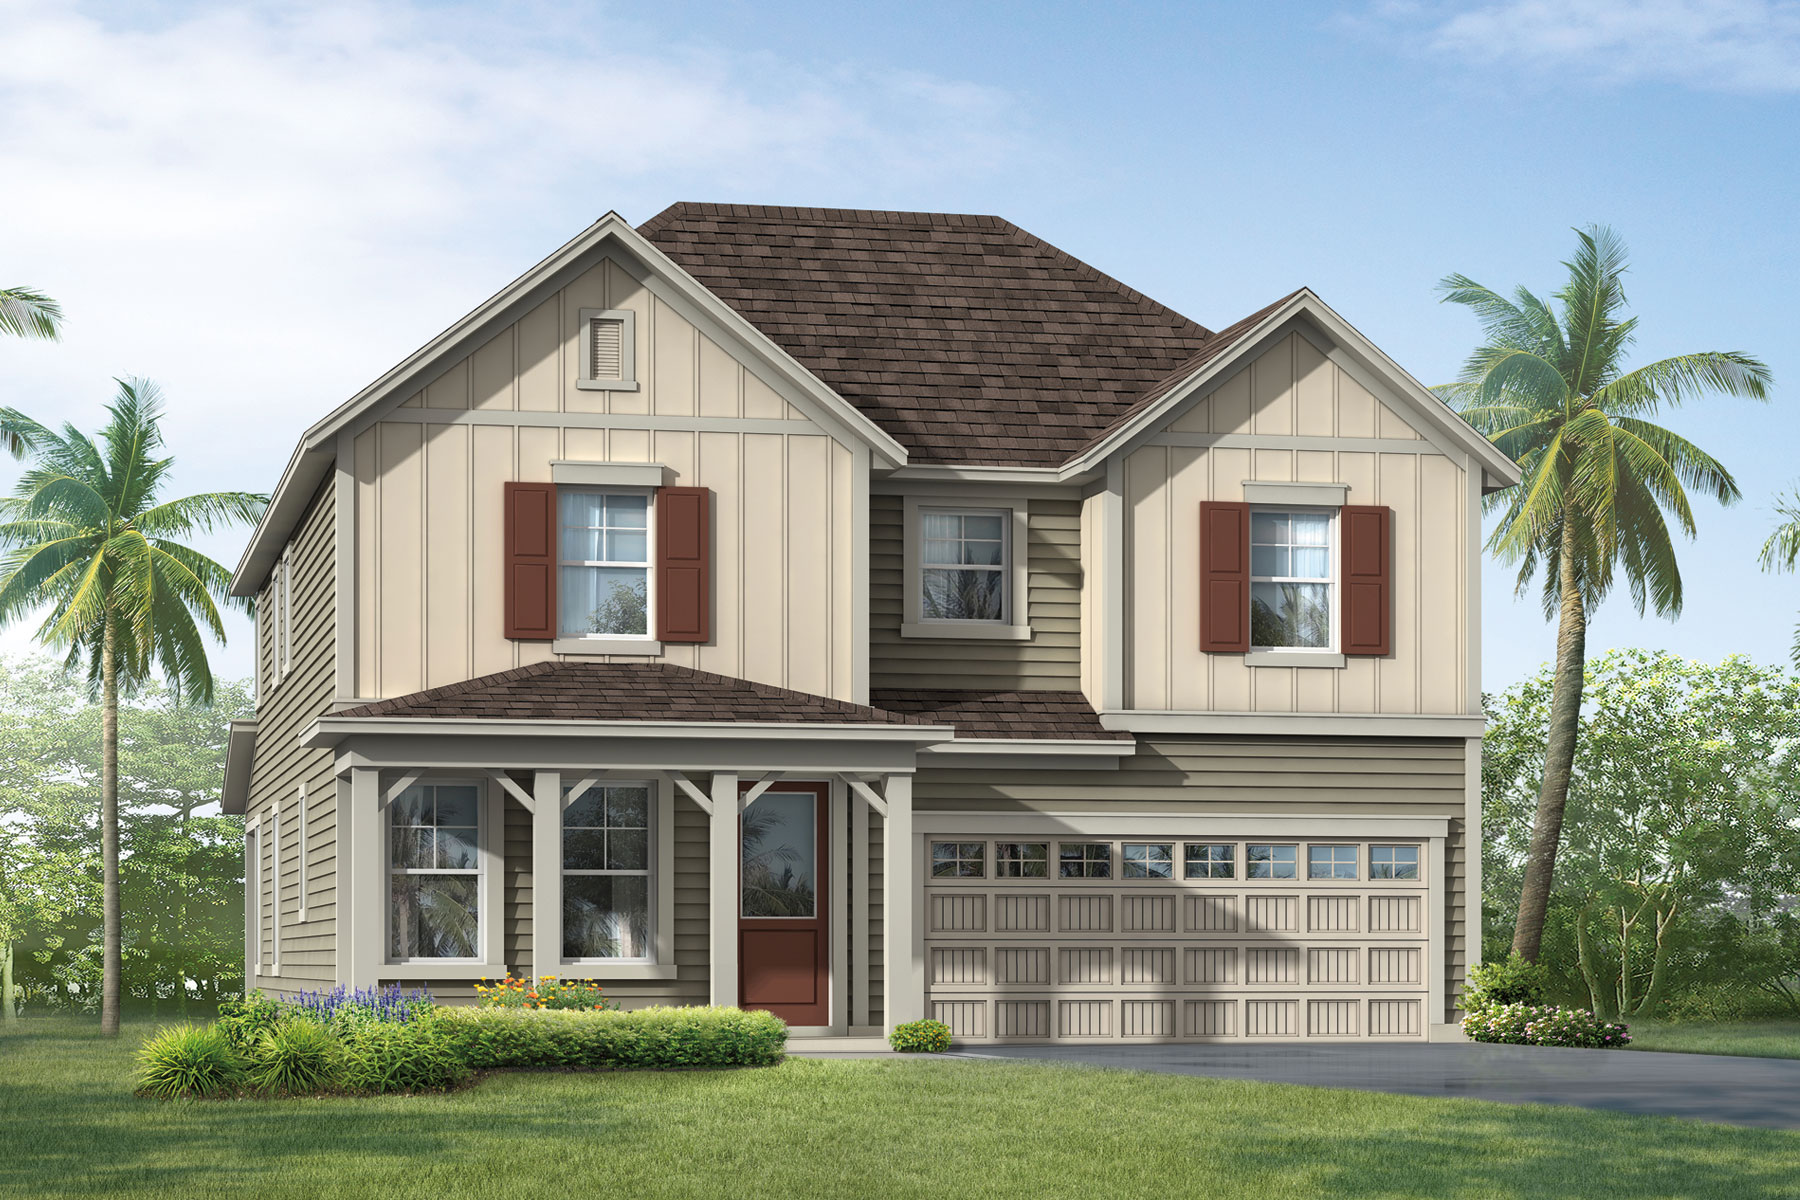 RiverTown - Arbors Elevation Front in St. Johns Florida by Mattamy Homes